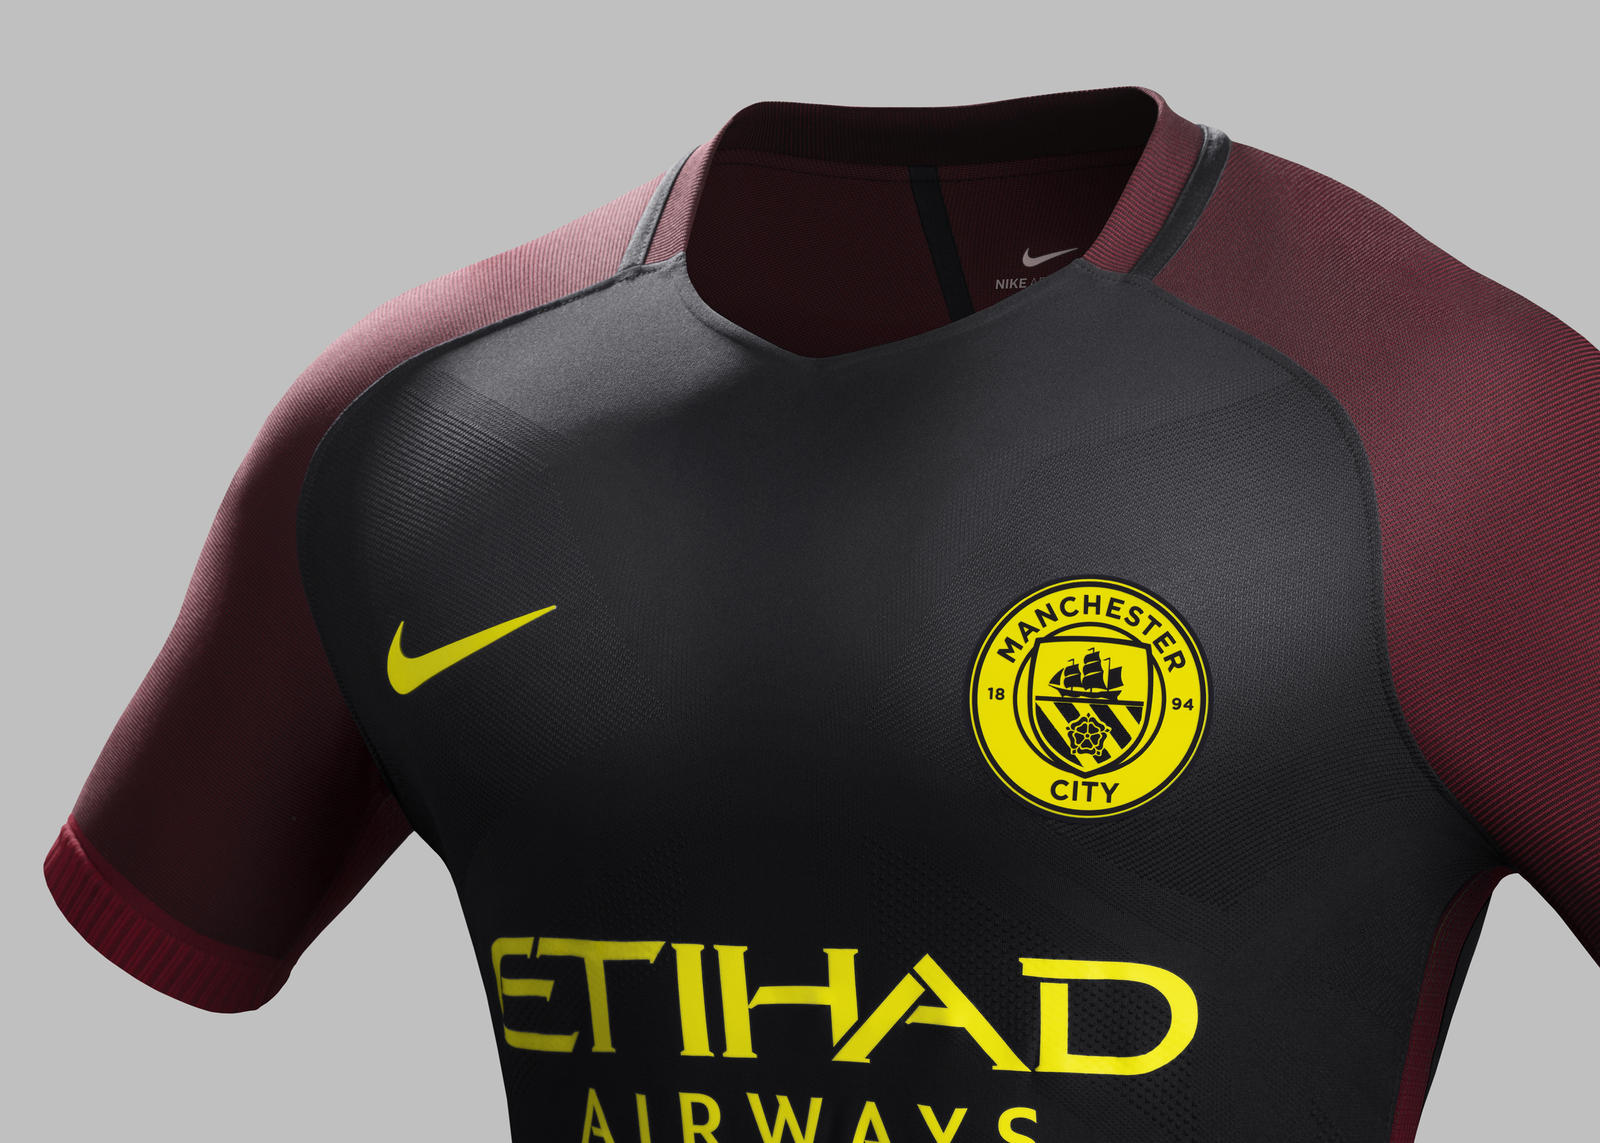 low cost 97fea e1b7f Fans don't know what to think about Manchester City's new ...